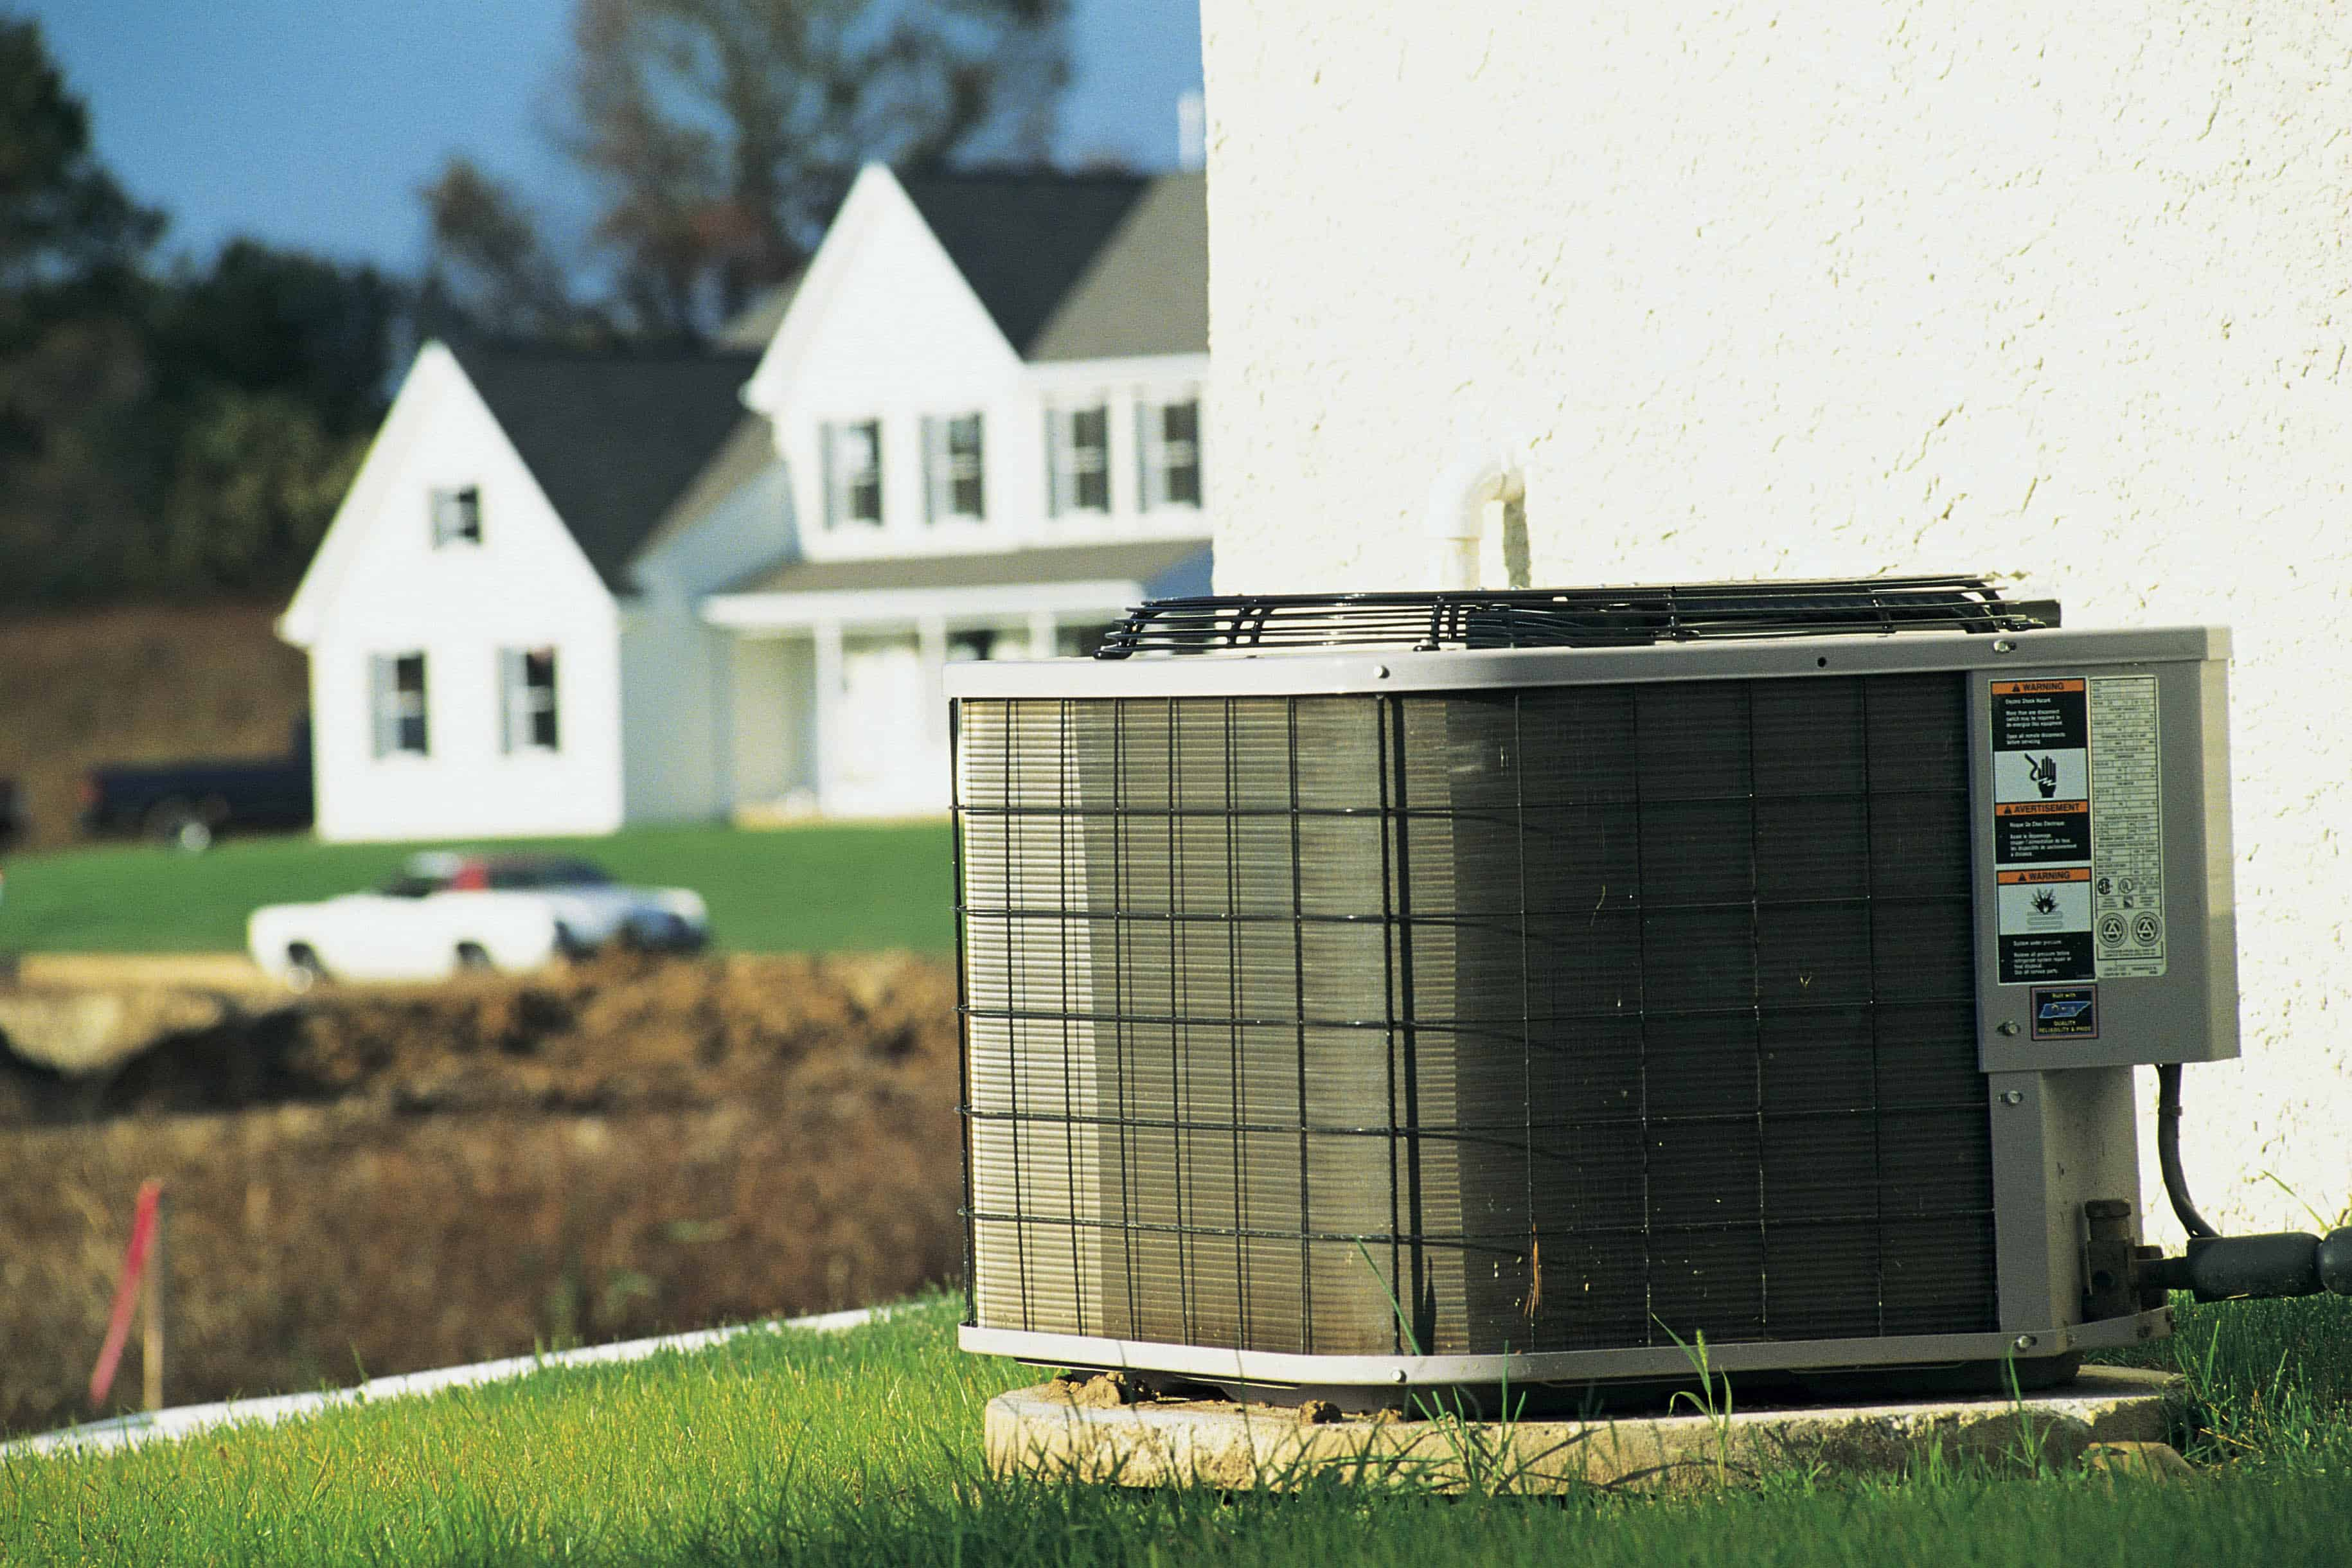 New Central Air Conditioner